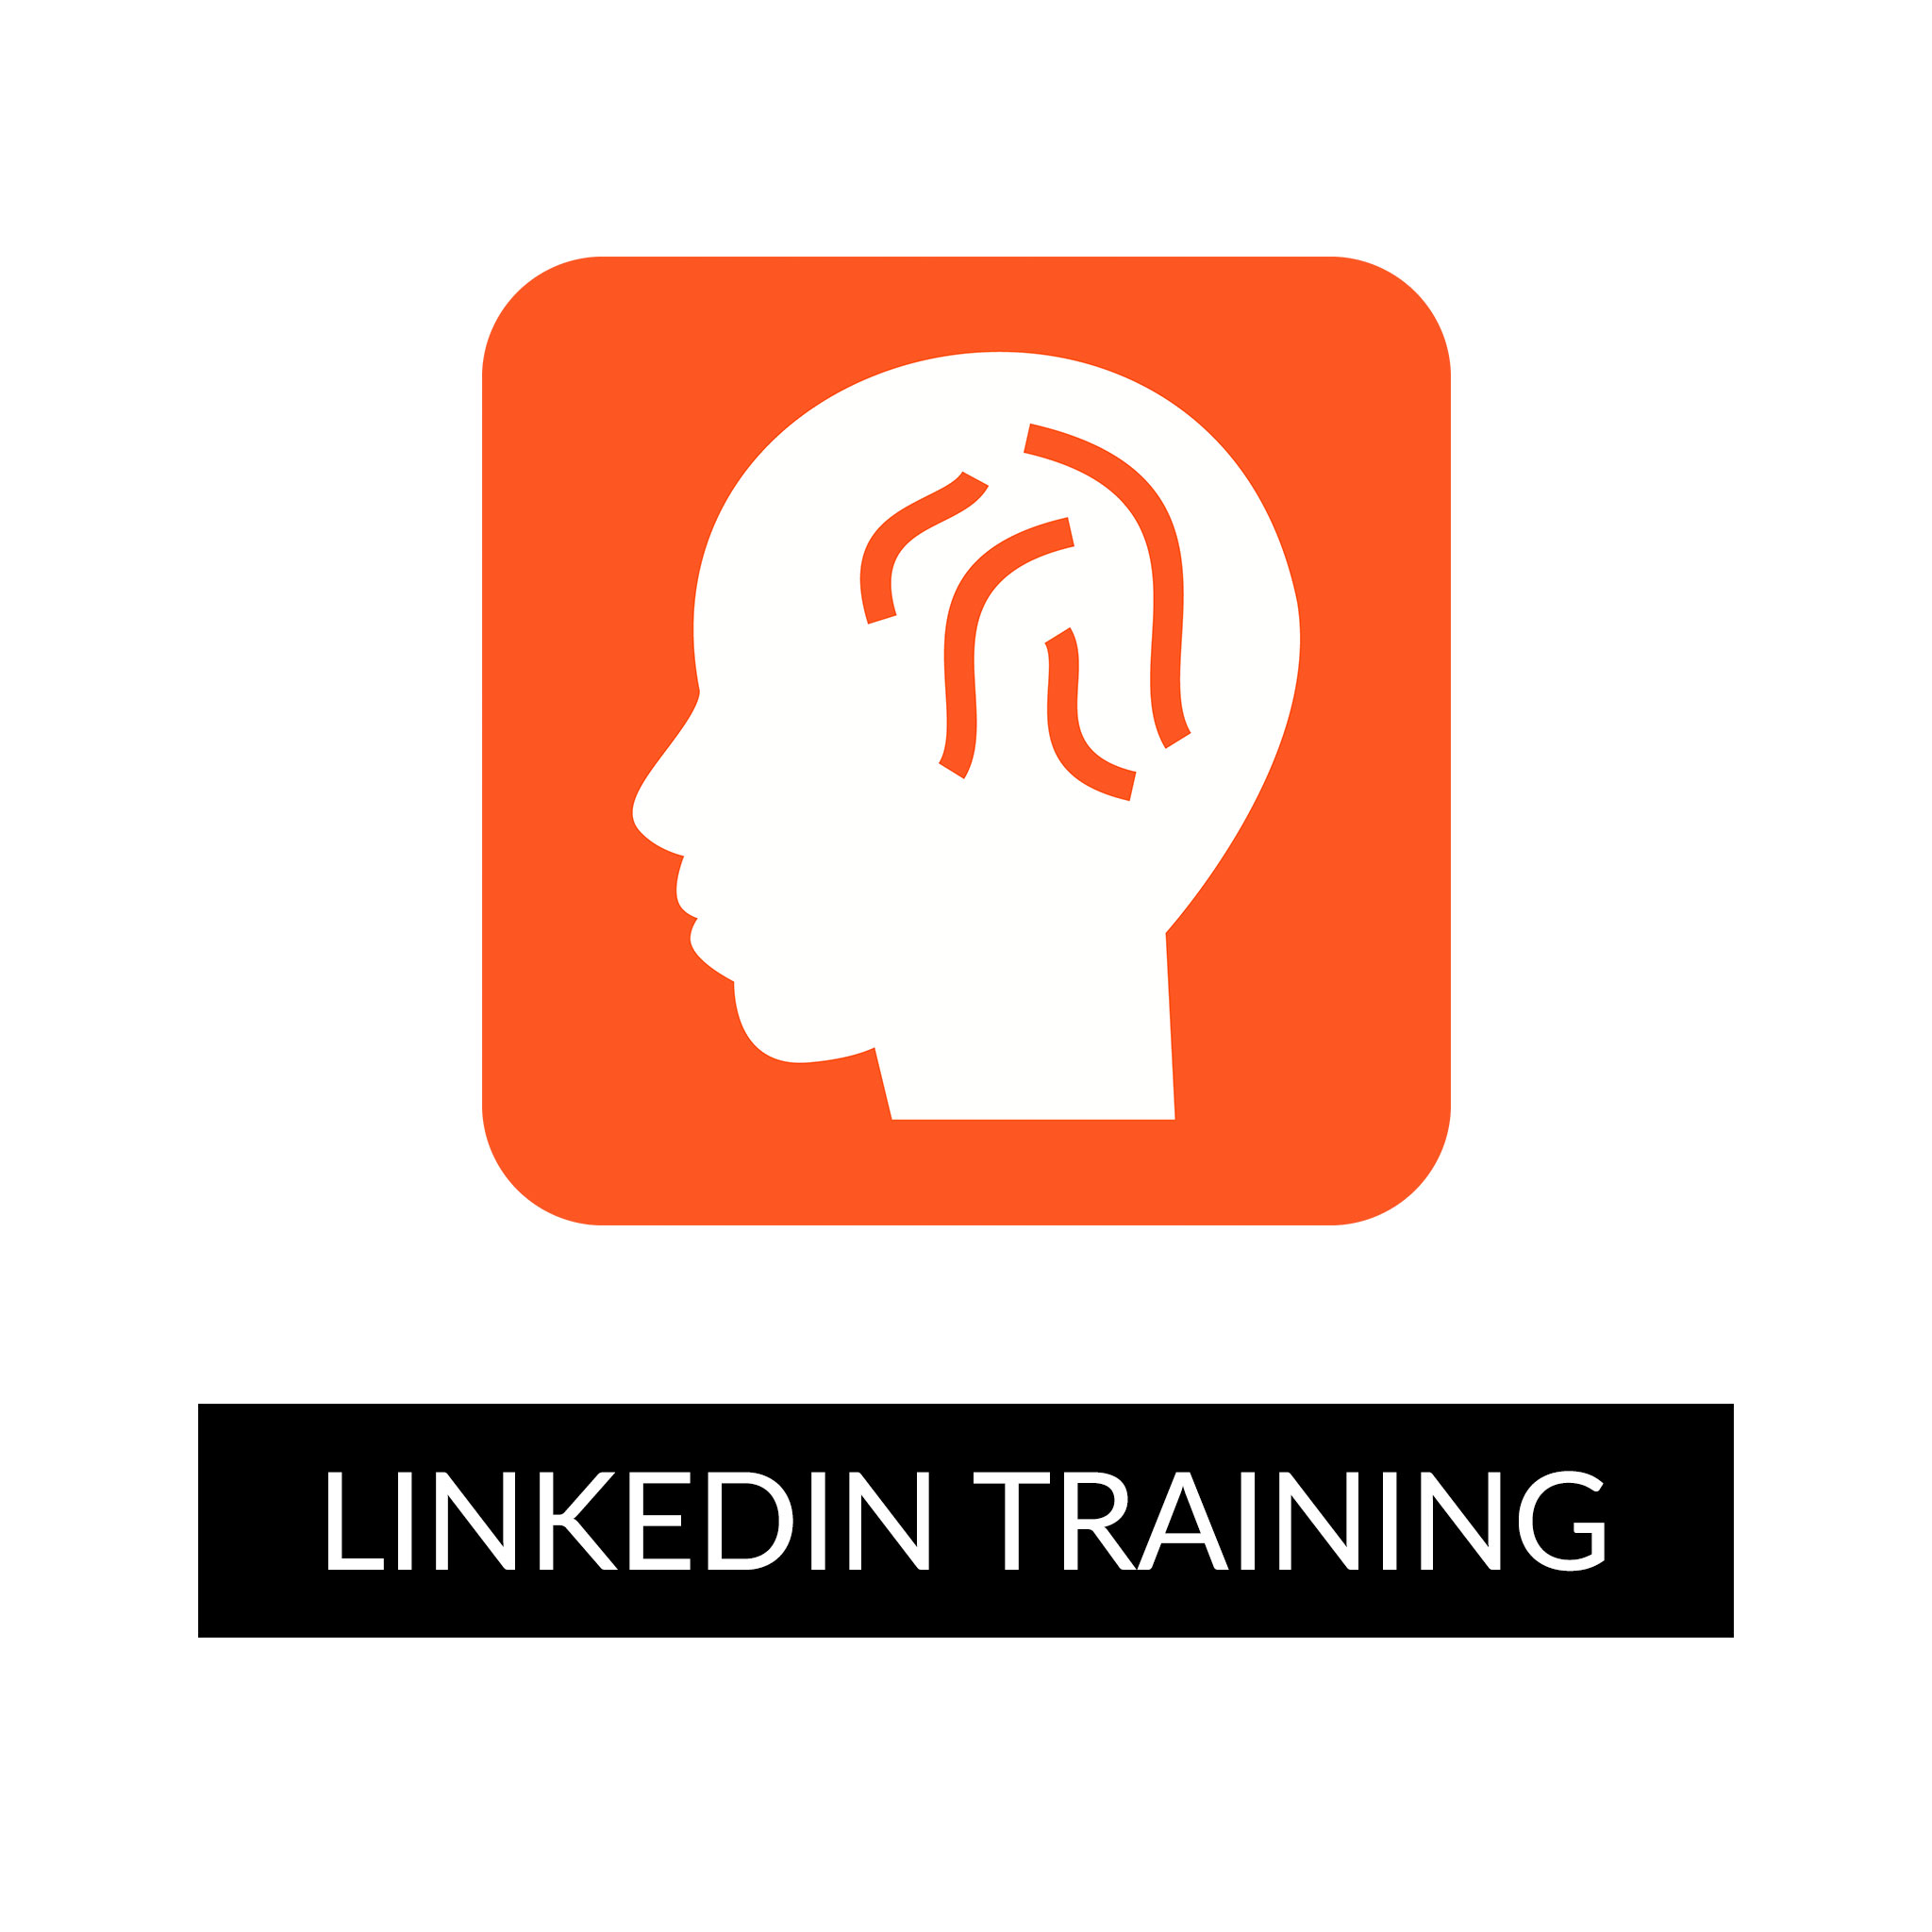 LinkedIn Training Provided by the Surrey-based Digitsl Marketing Company: 'Upper Hand Digital'